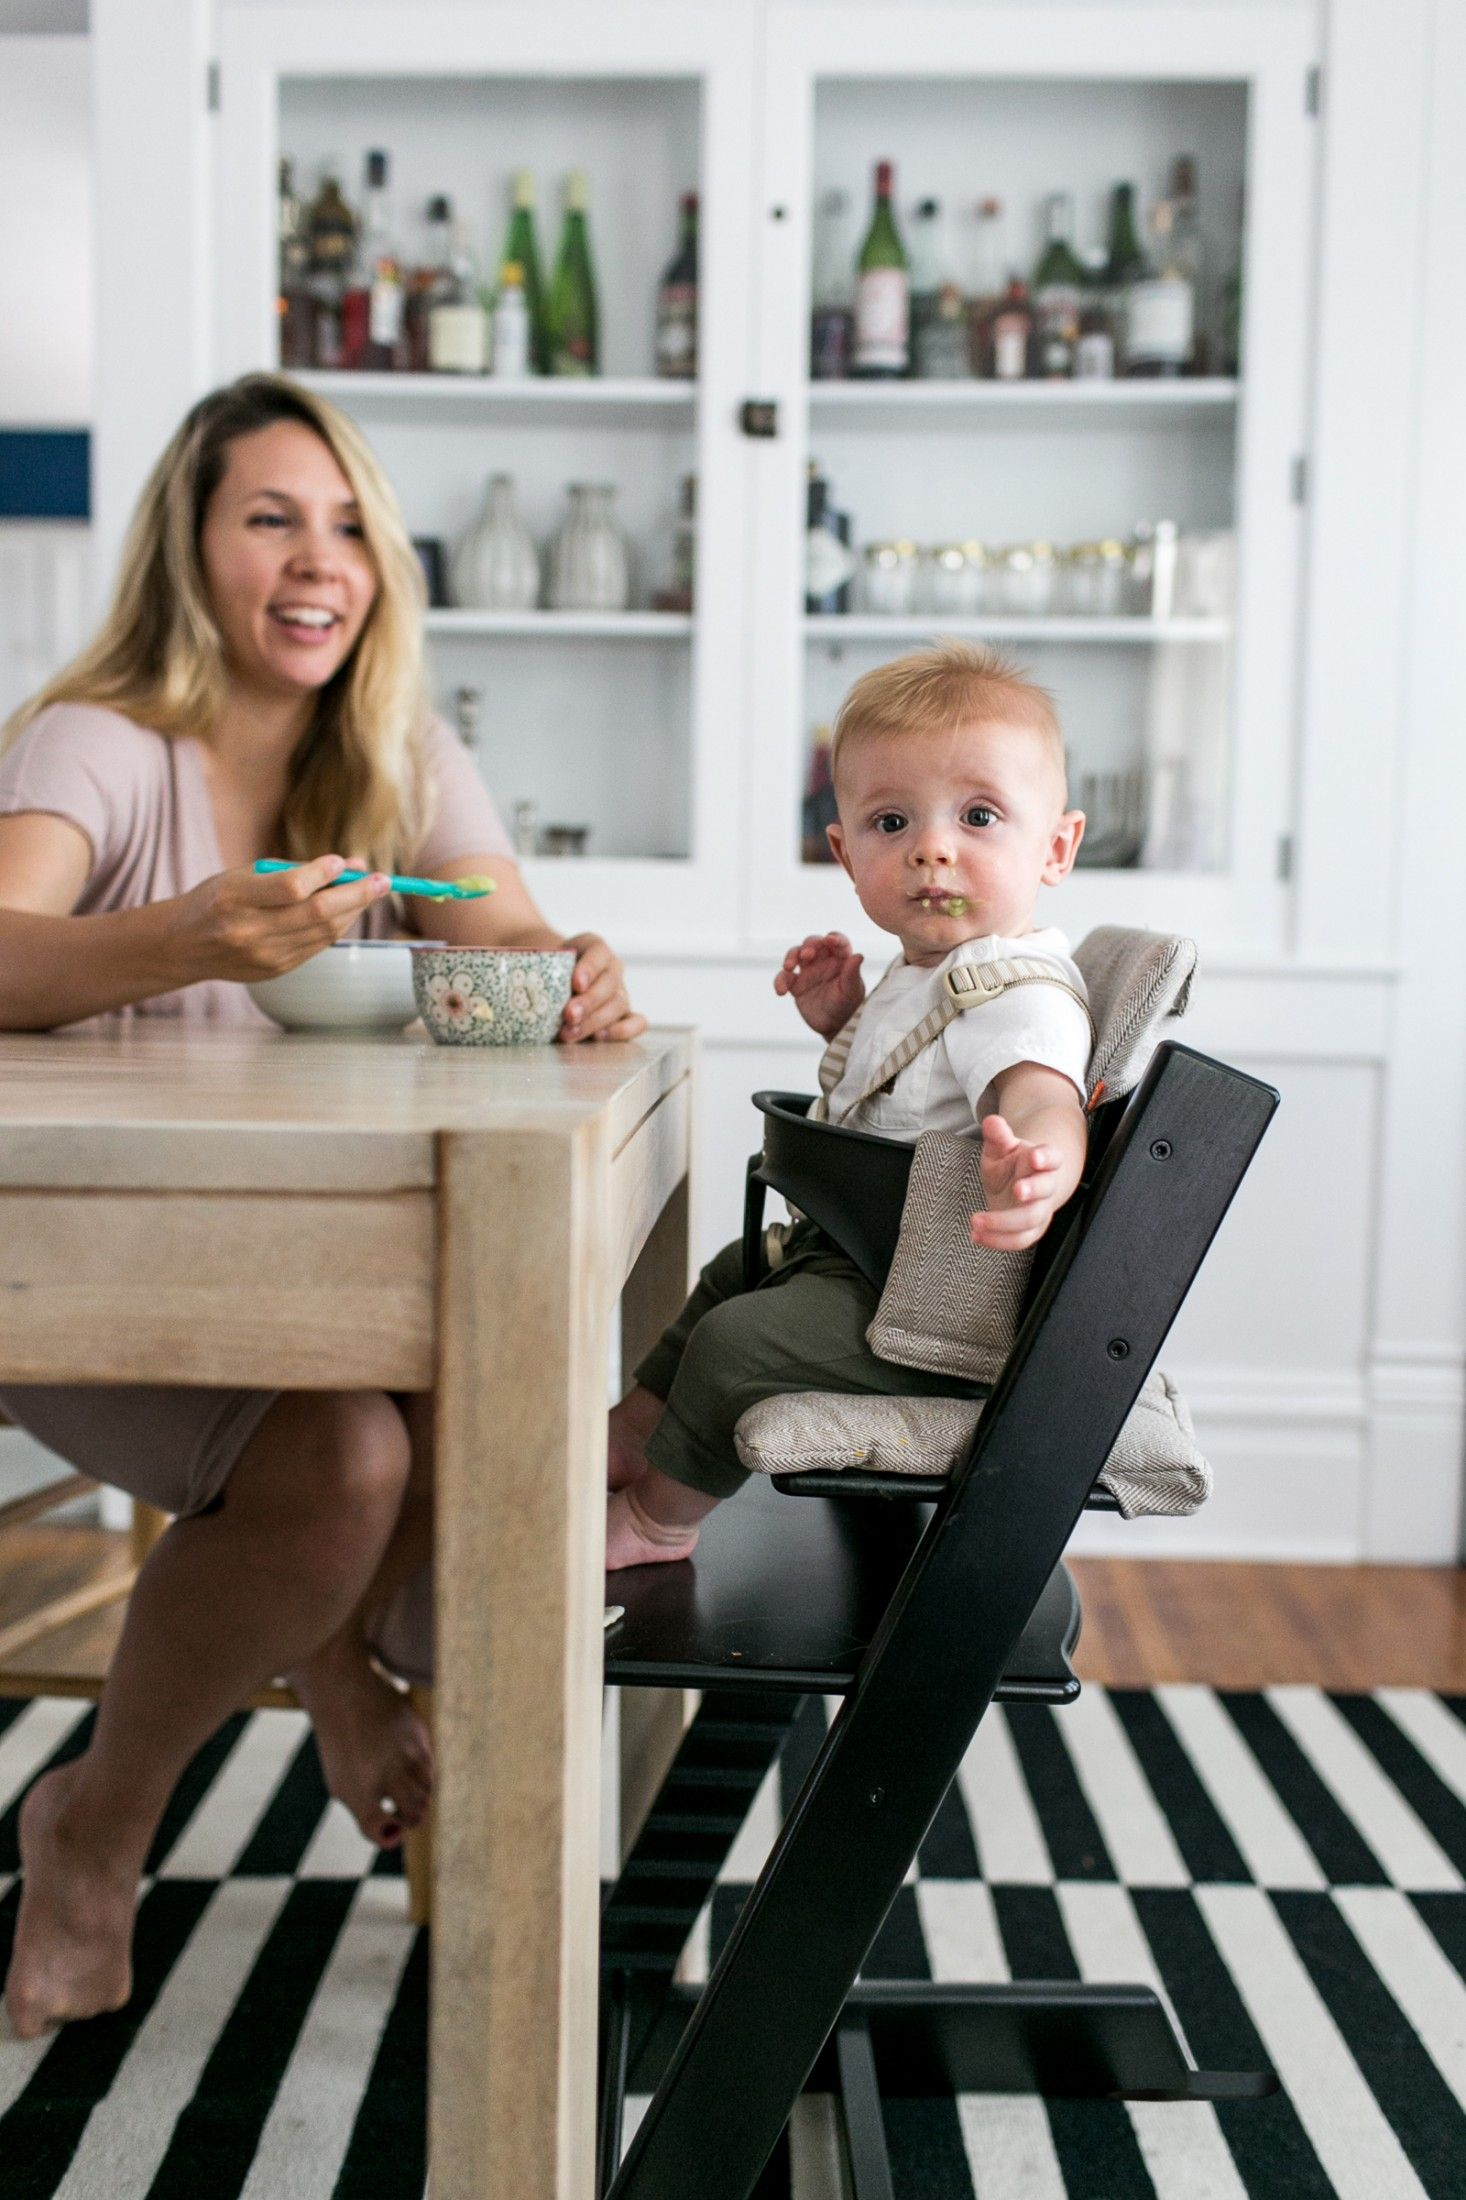 [ad] The Scandinavian Tripp Trapp chair grows with babies ...